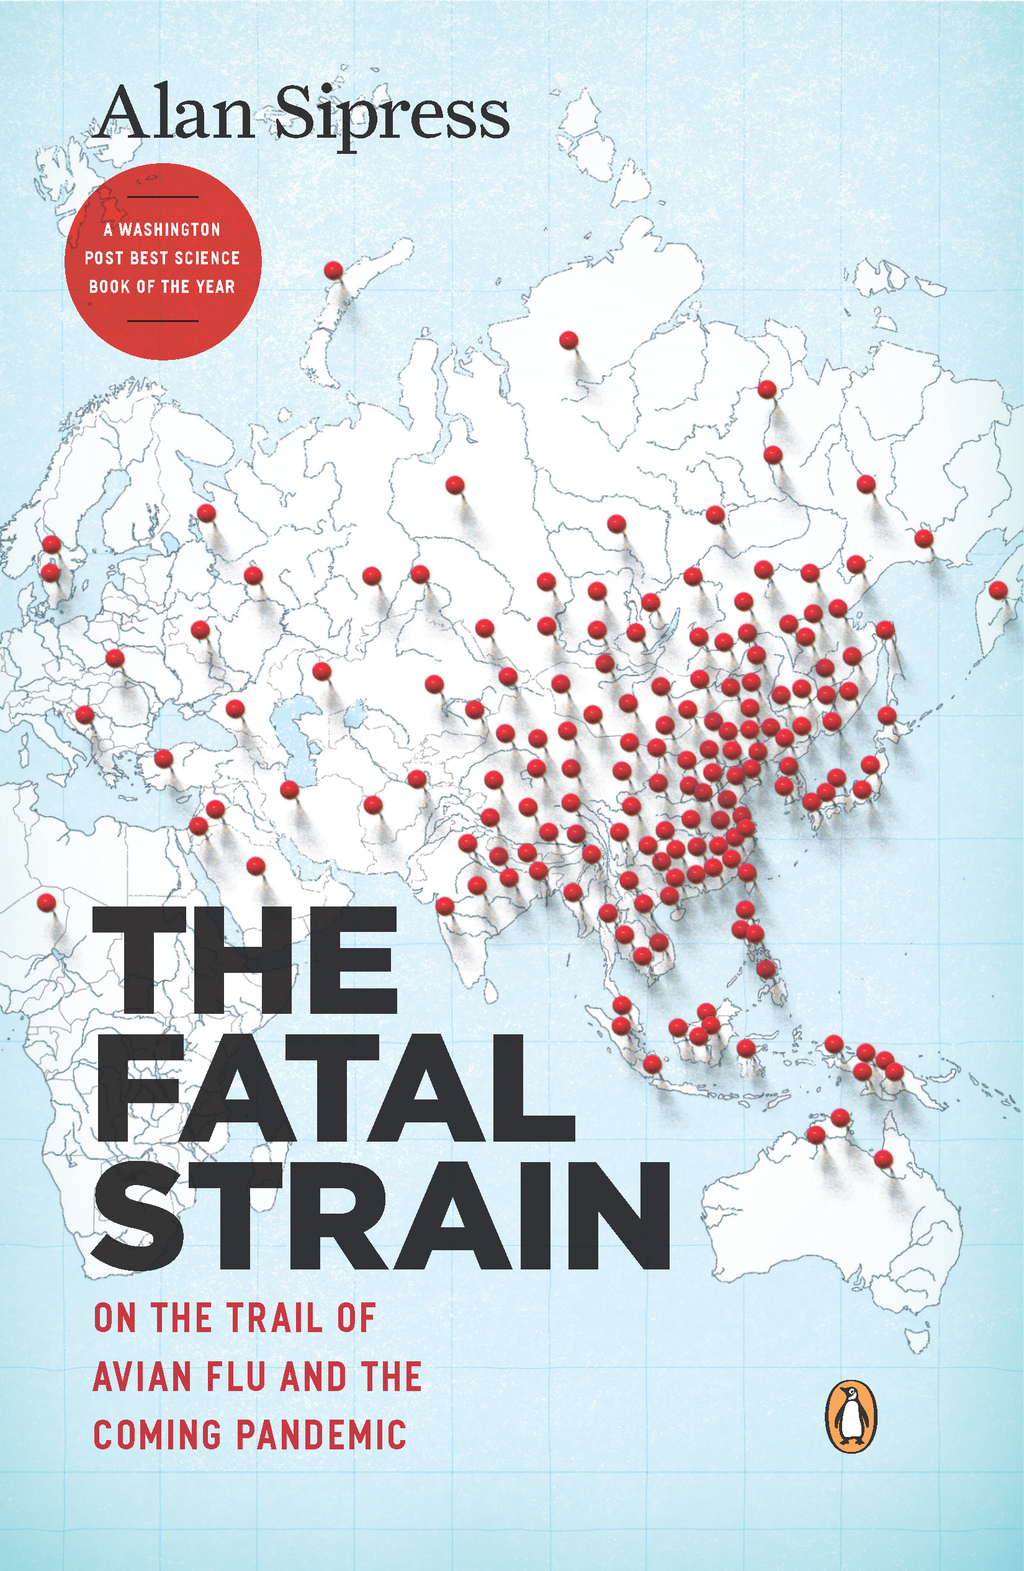 The Fatal Strain On the Trail of Avian Flu and the Coming Pandemic